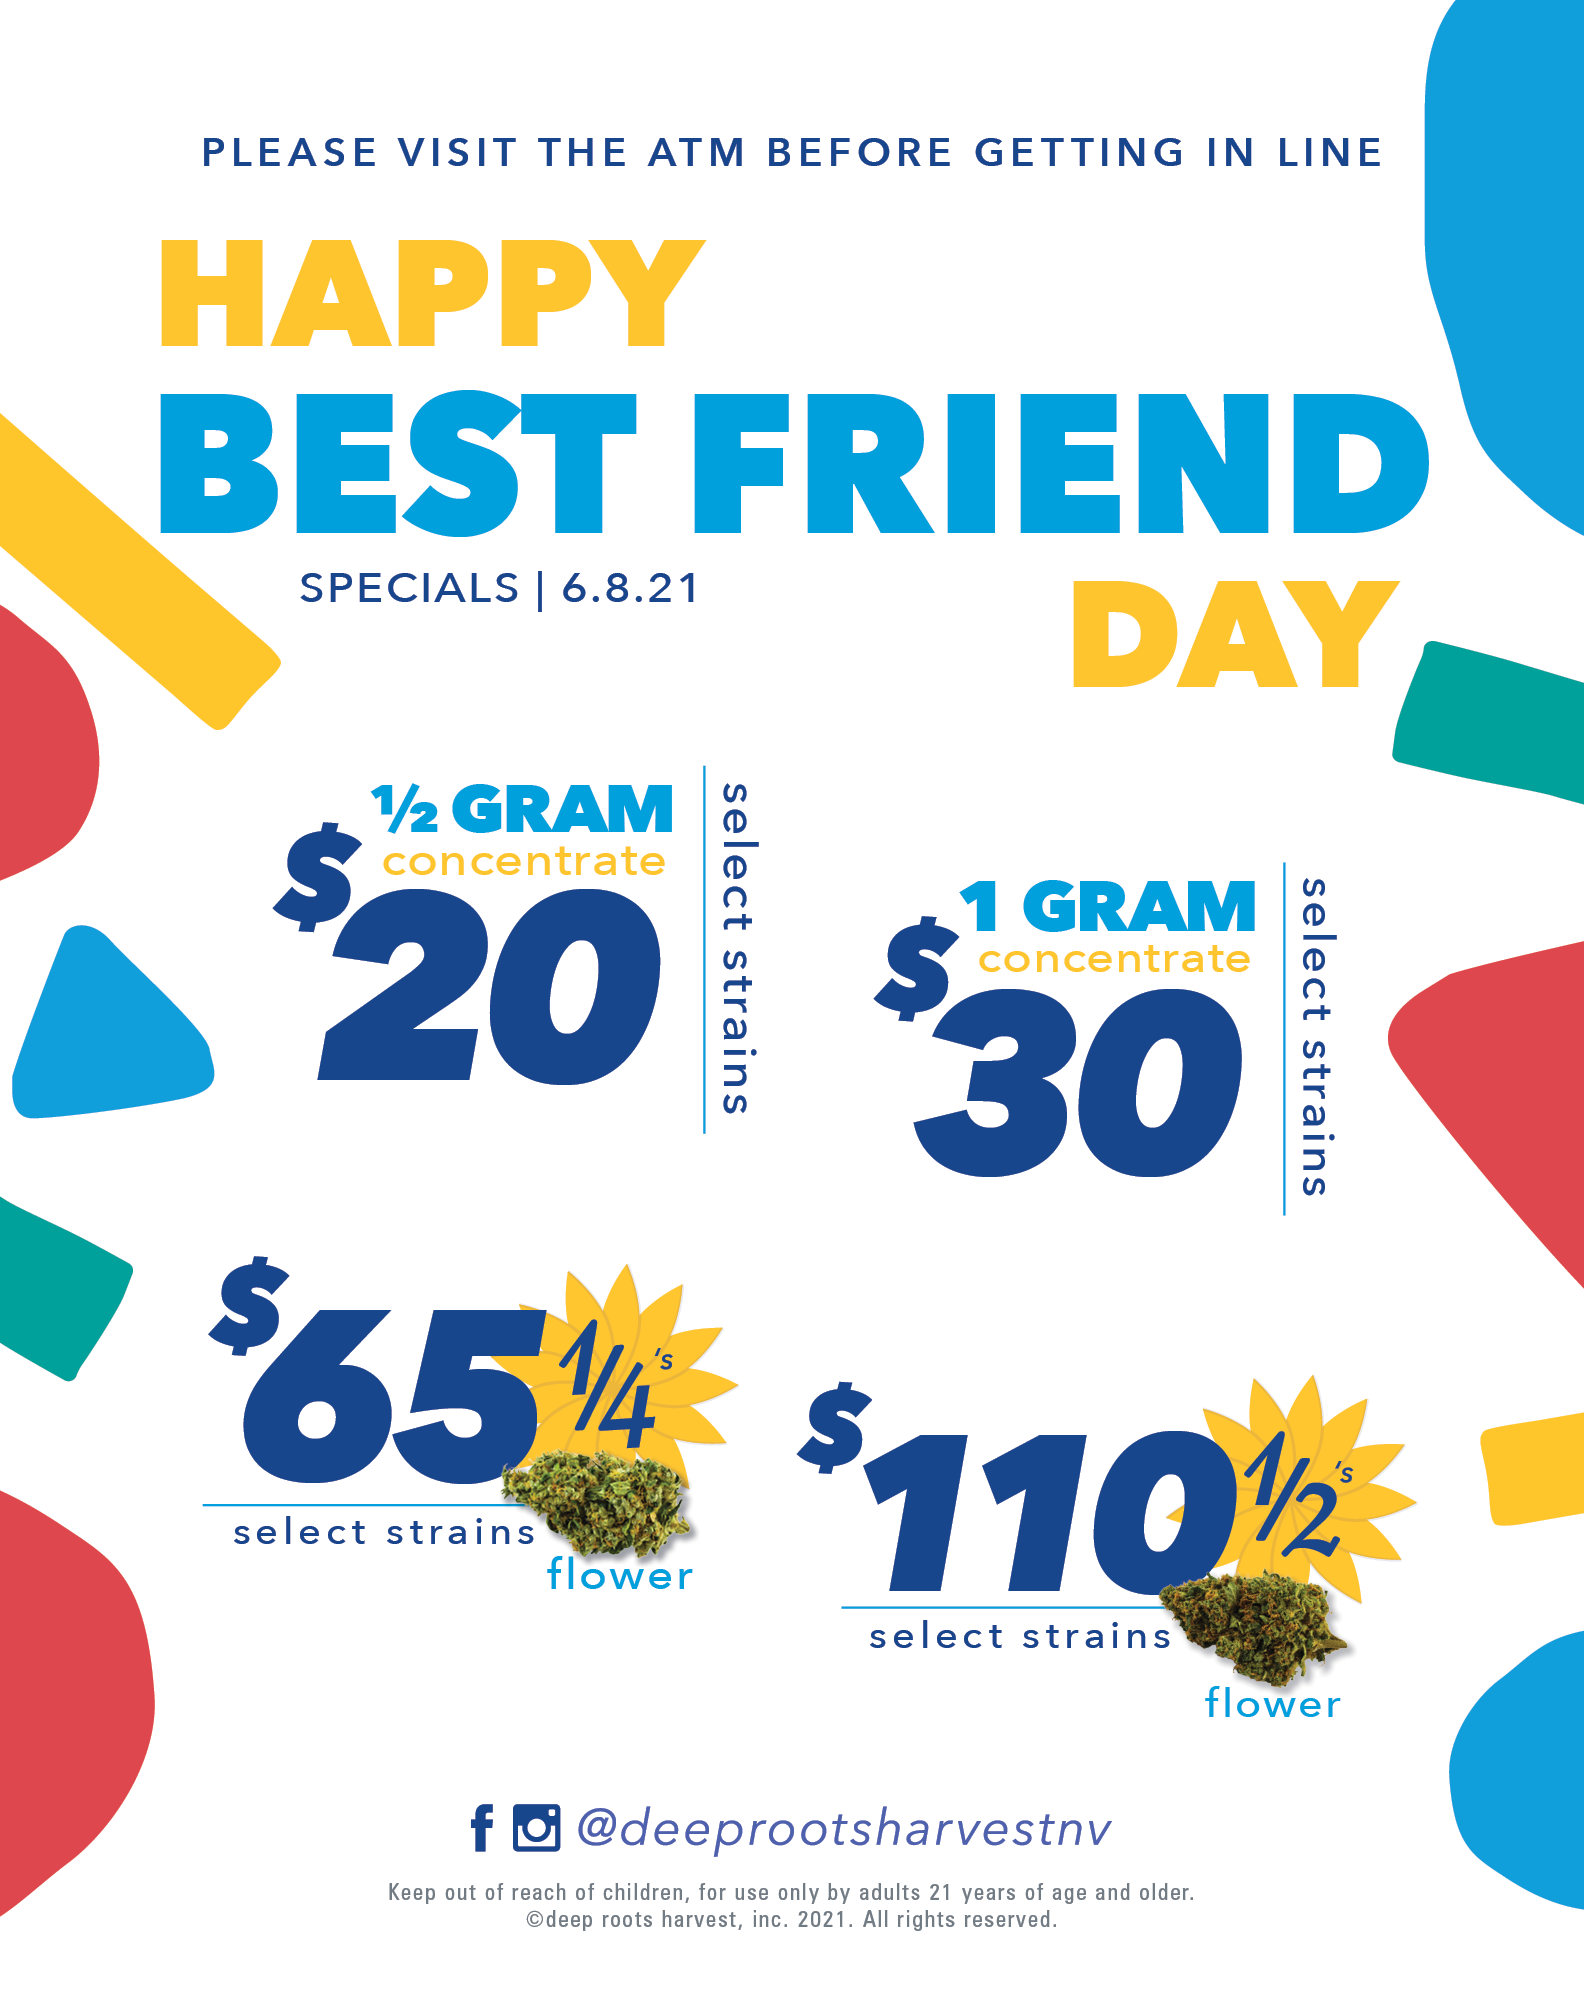 happy best friends day specials. $20 half gram conentrates. $30 1g concentrates. $65 quarters and $110 half ounces.